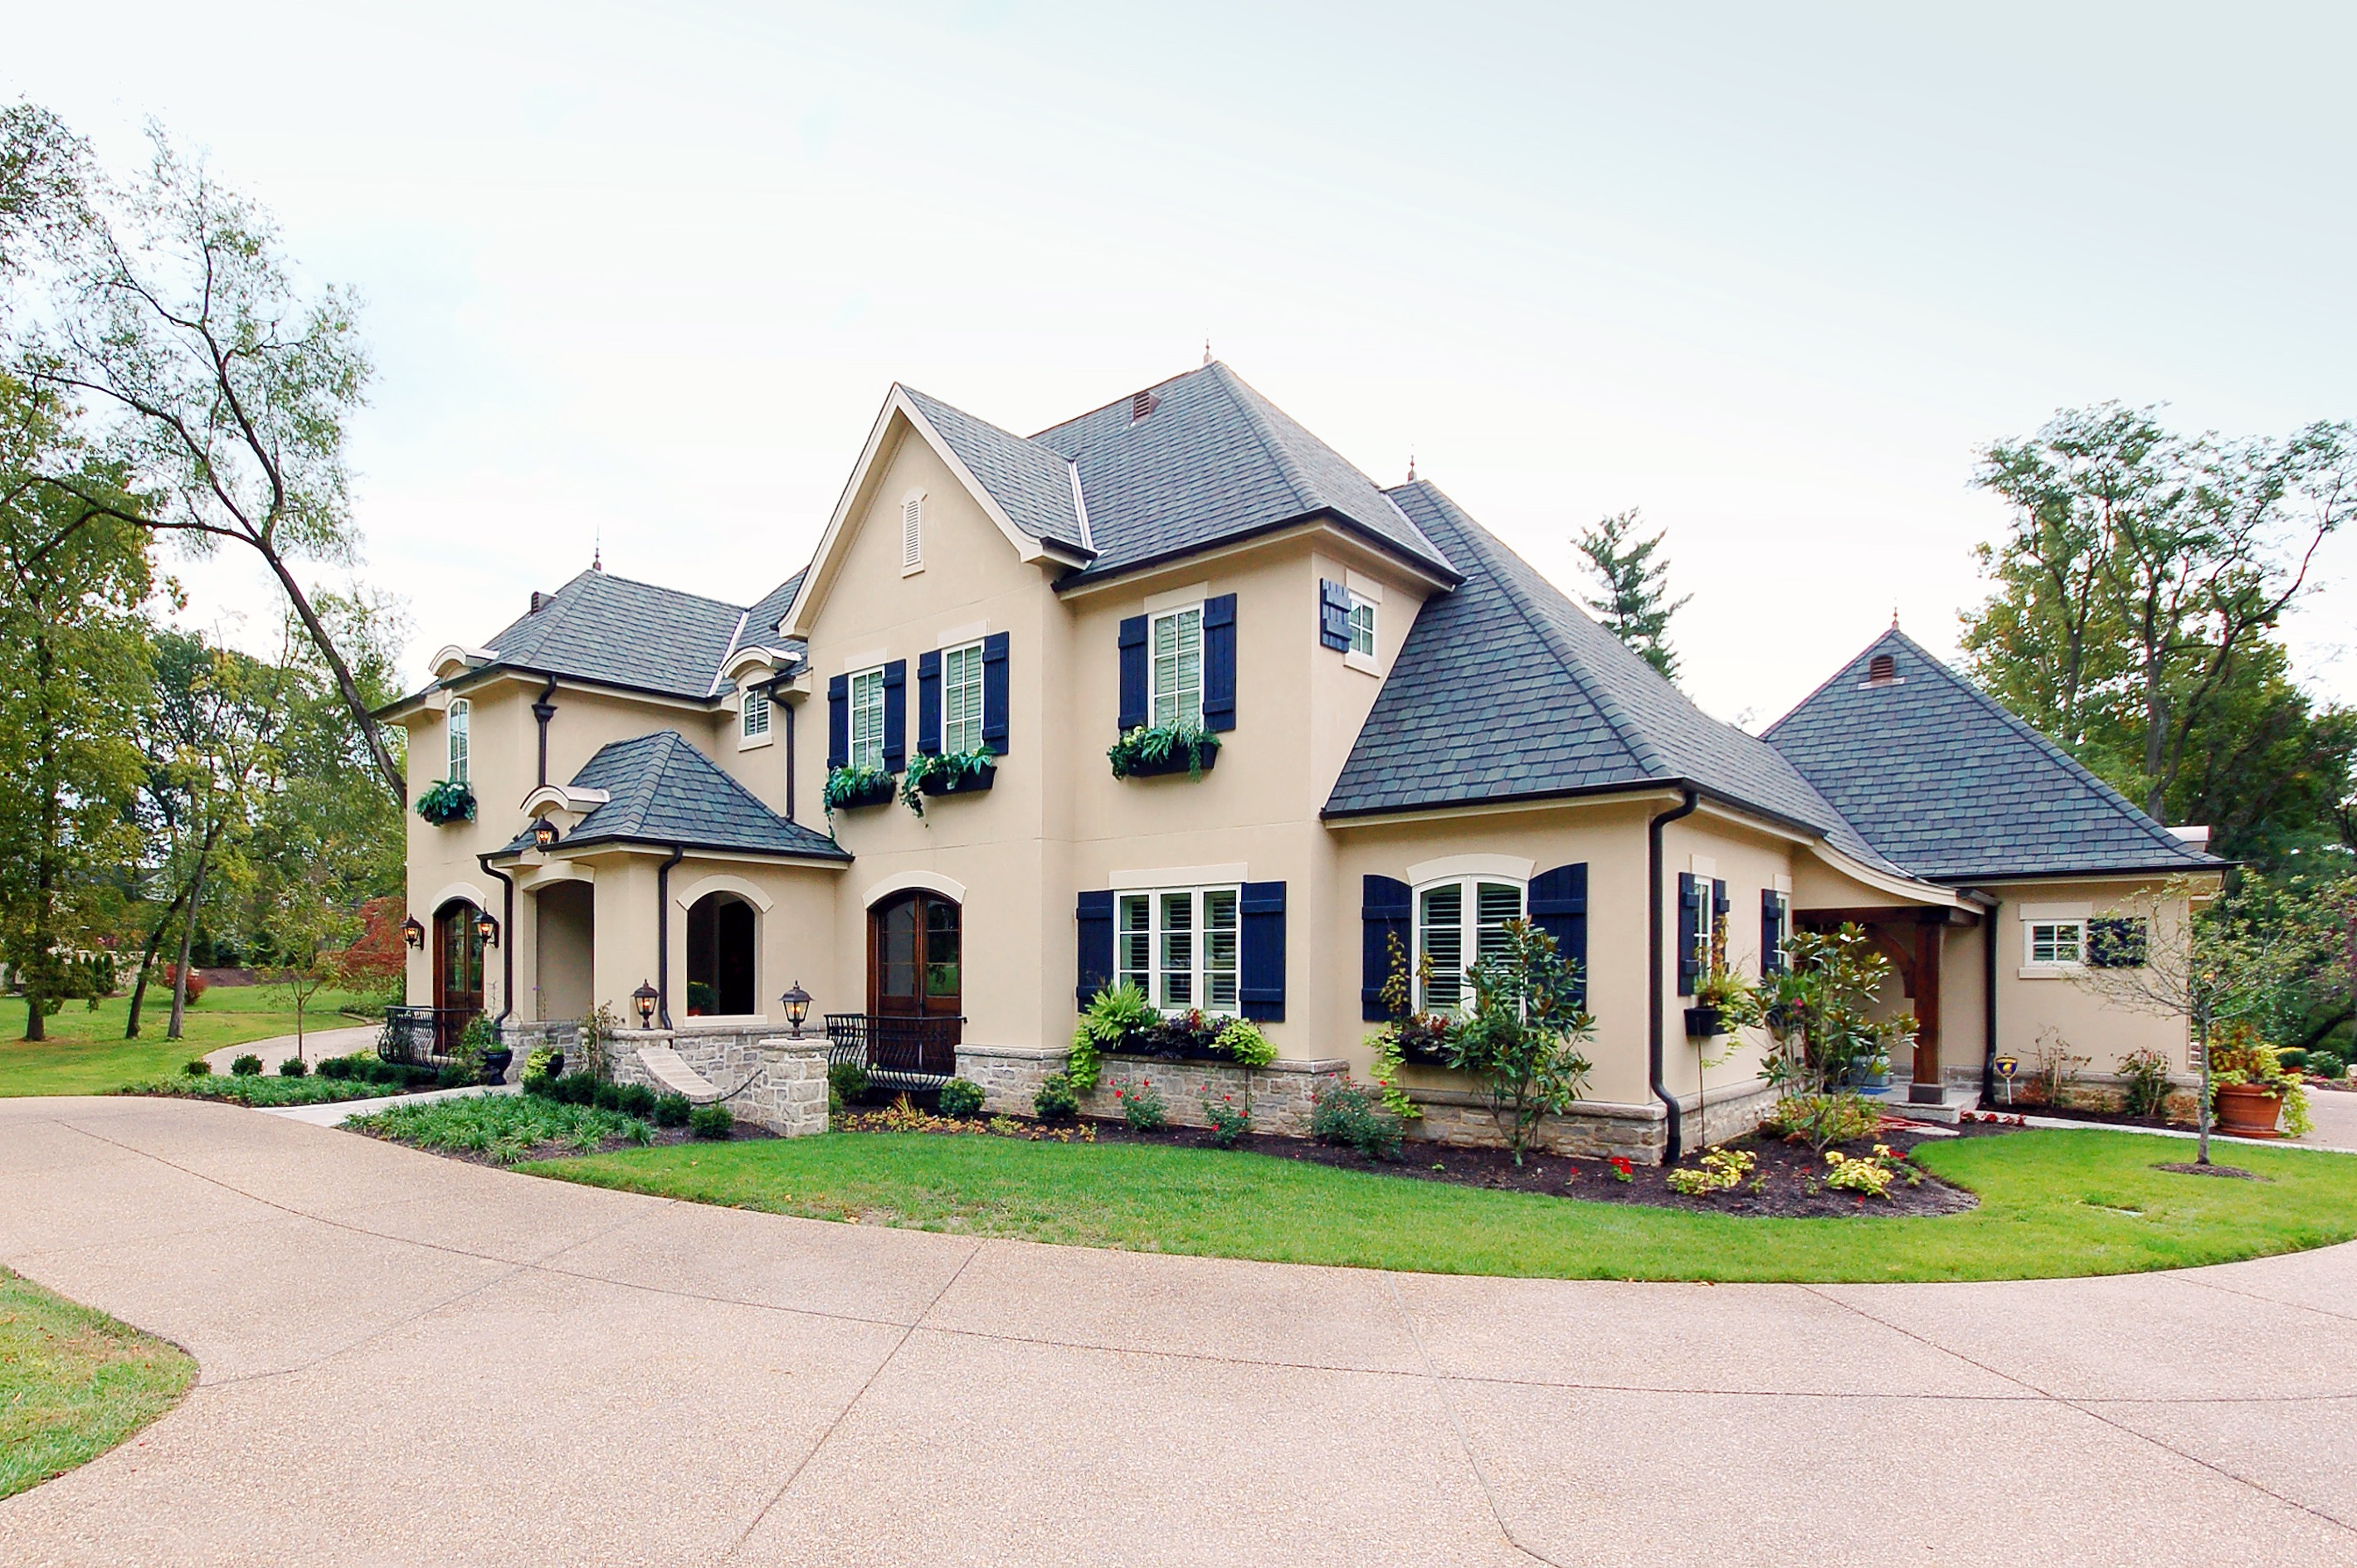 Exterior colors for french home design 2515 house decoration ideas - Country home exterior color schemes ...